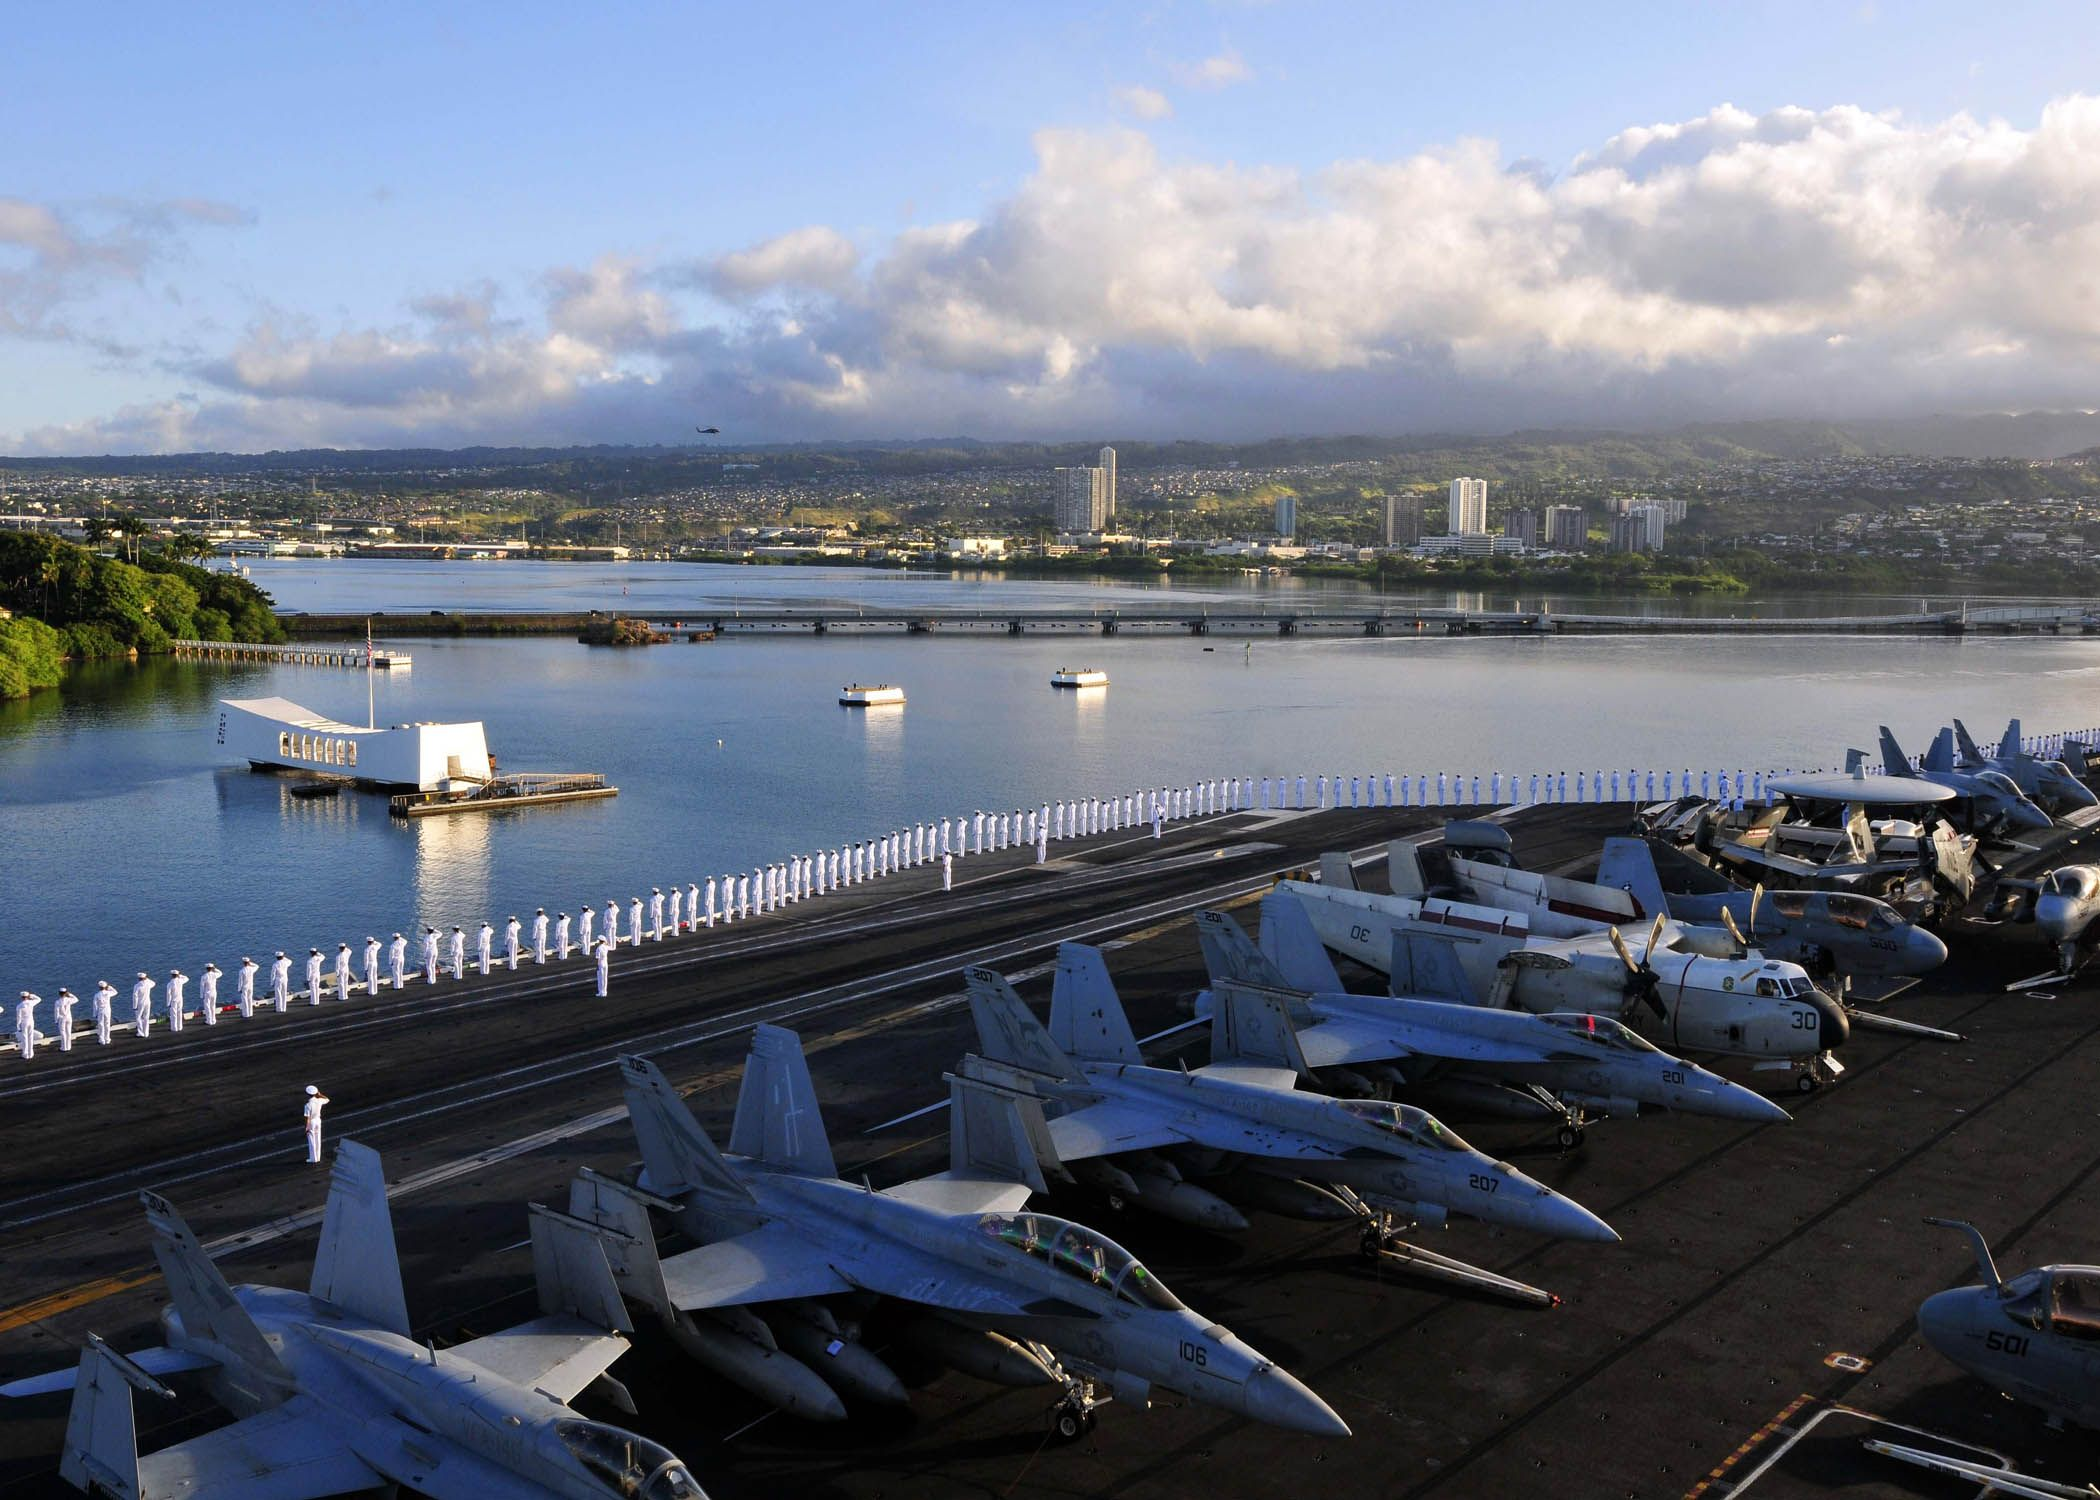 USS Ronald Reagan enters Pearl Harbor. Official US Navy photo. Posted by Charles McCain, author of the naval epic, AN HONORABLE GERMAN.